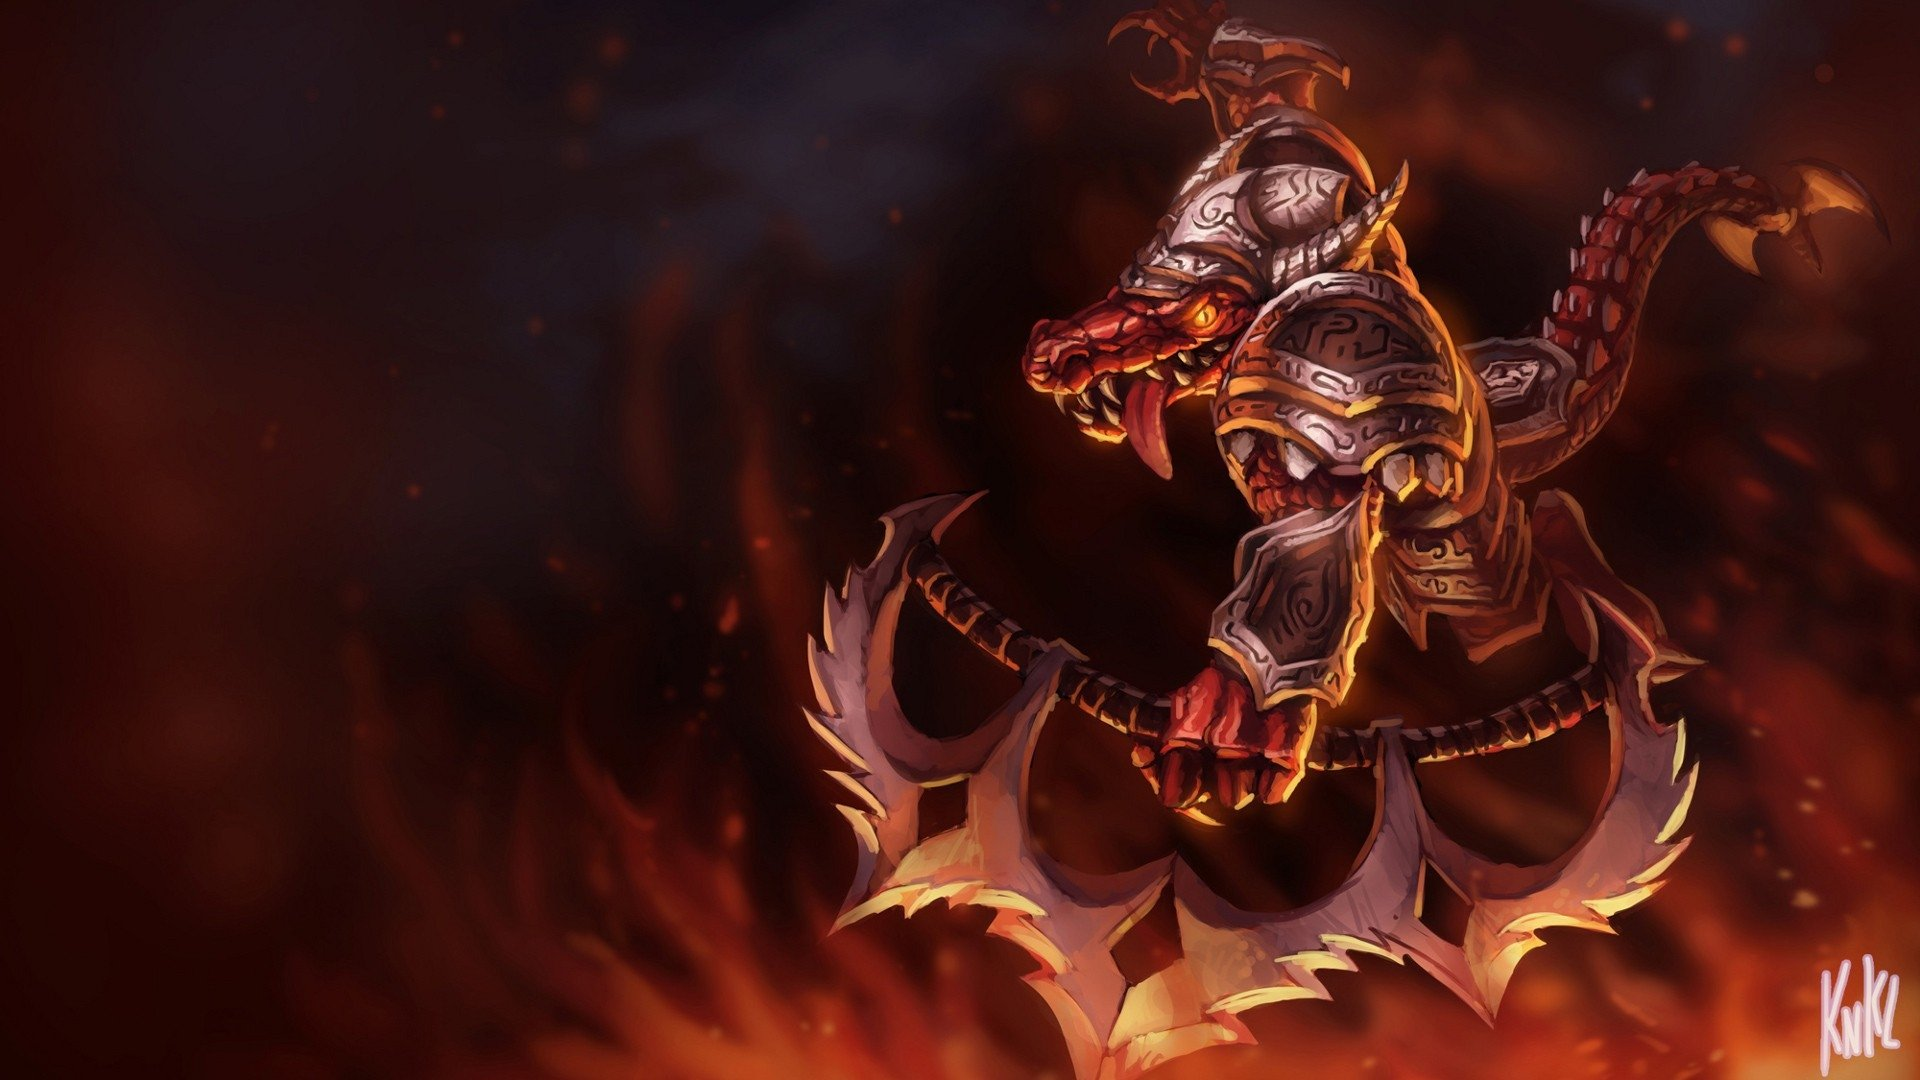 Lol Champions Wallpaper Hd League Of Legends Full Hd Wallpaper And Background Image